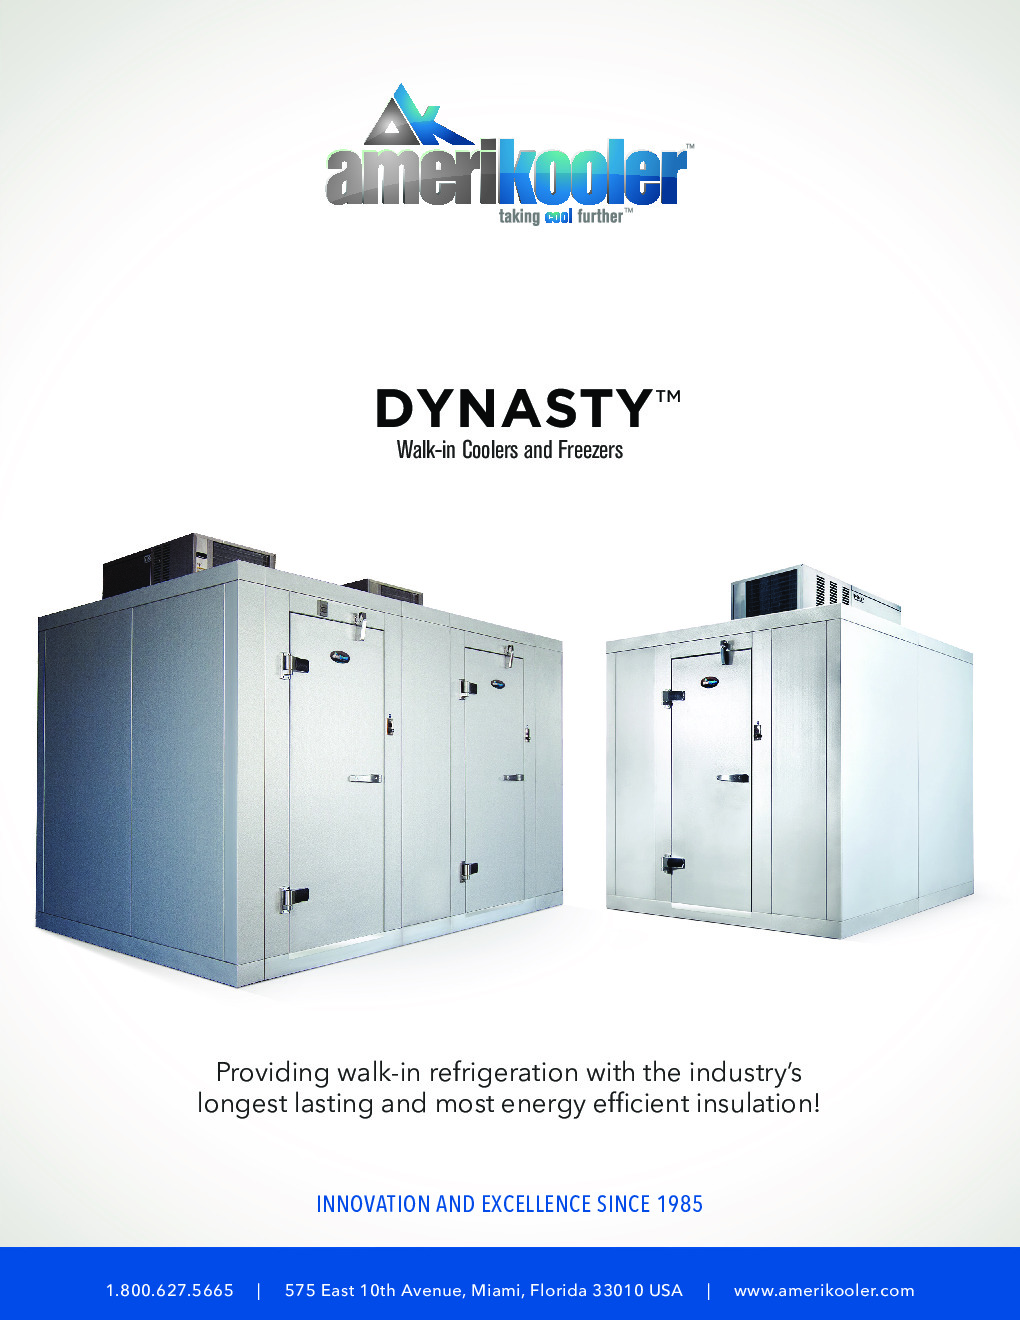 AmeriKooler DW082077N-7/13-SC 8' X 20' Walk-In Cooler, 13' L Cooler without Floor and 7' L Freezer, Self Contained